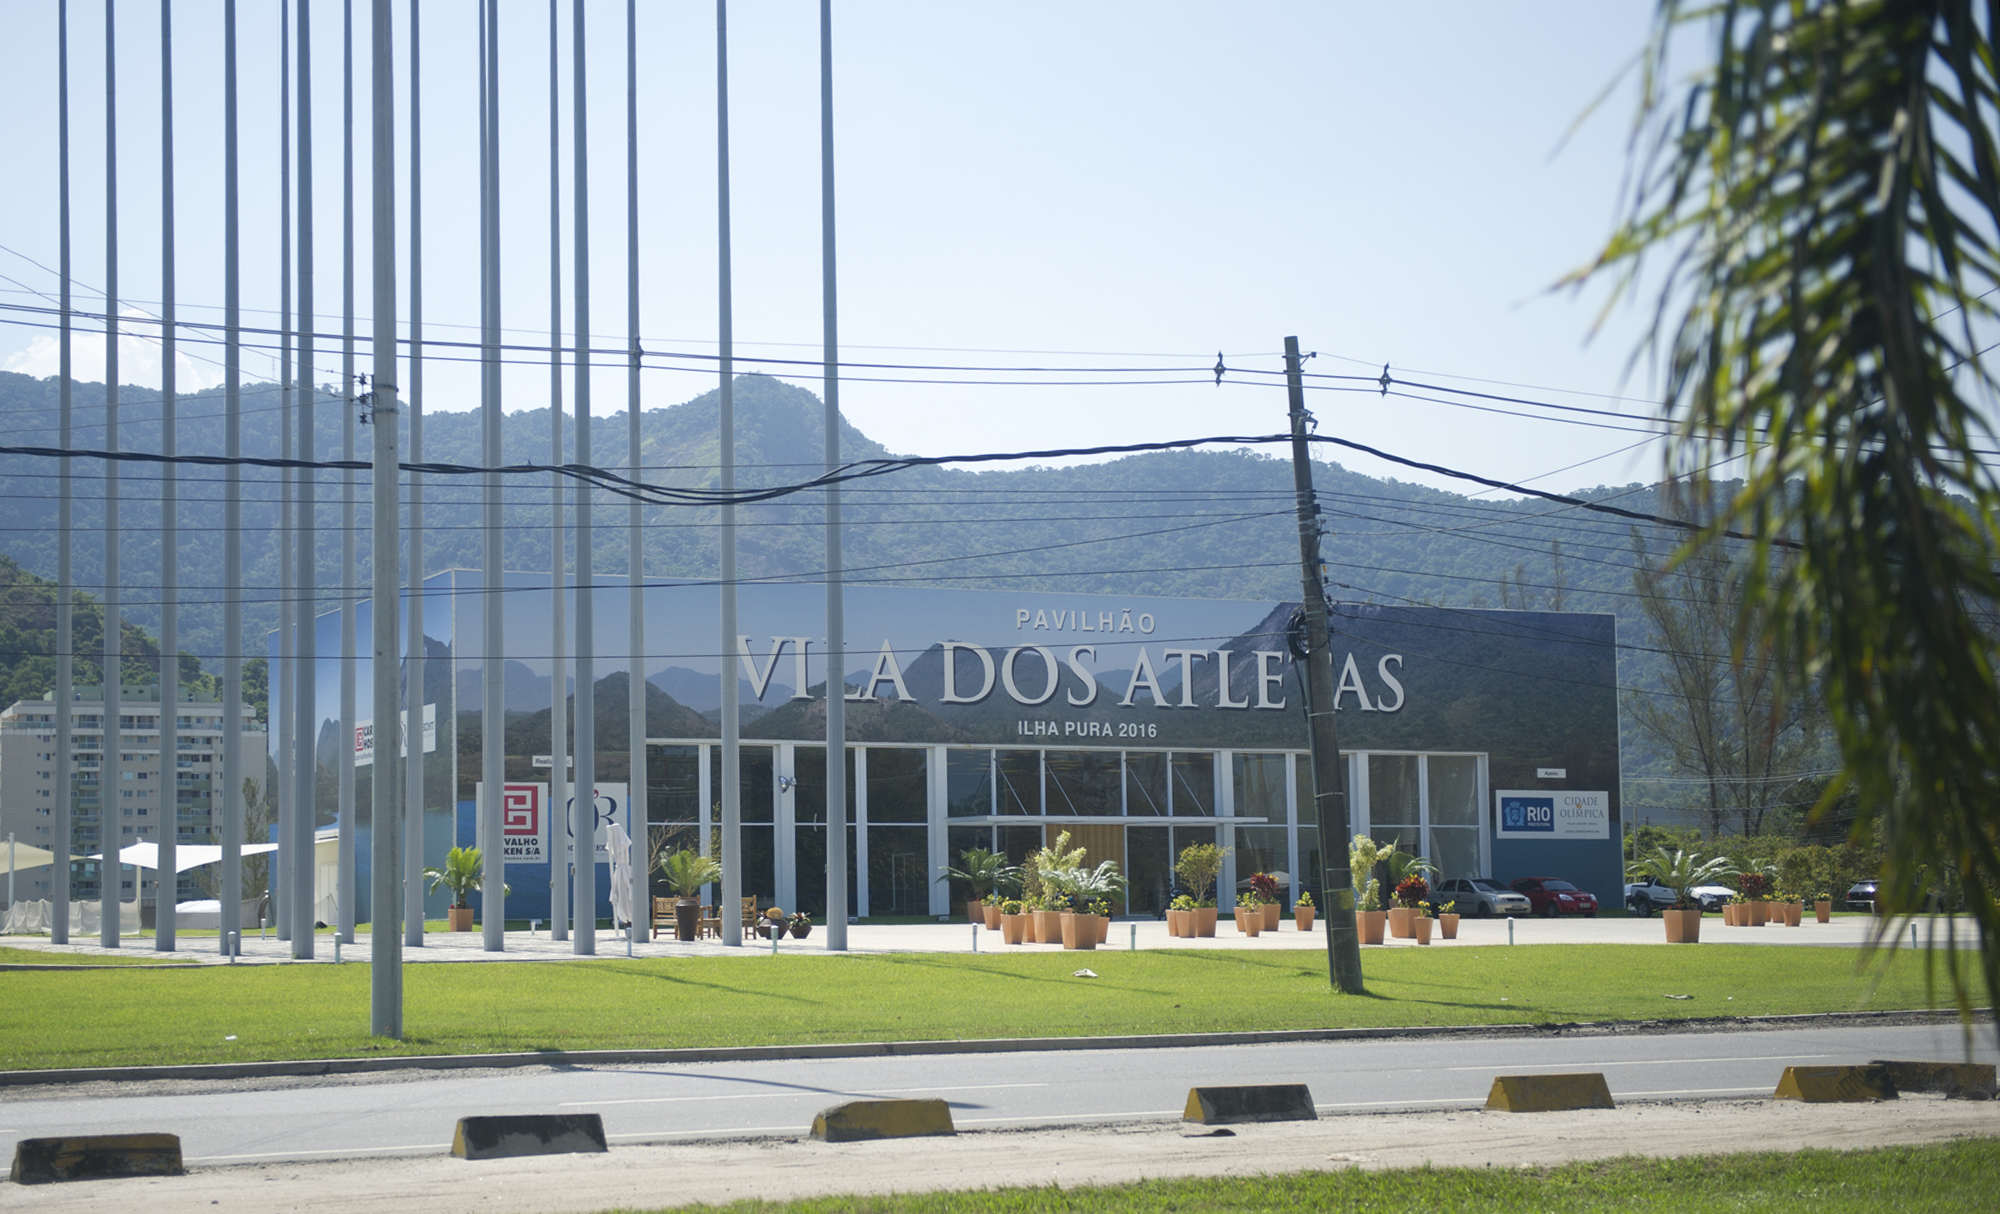 The planned location for the Olympic athlete village is just a few minute's drive from Brito's home in Vila Autodromo.